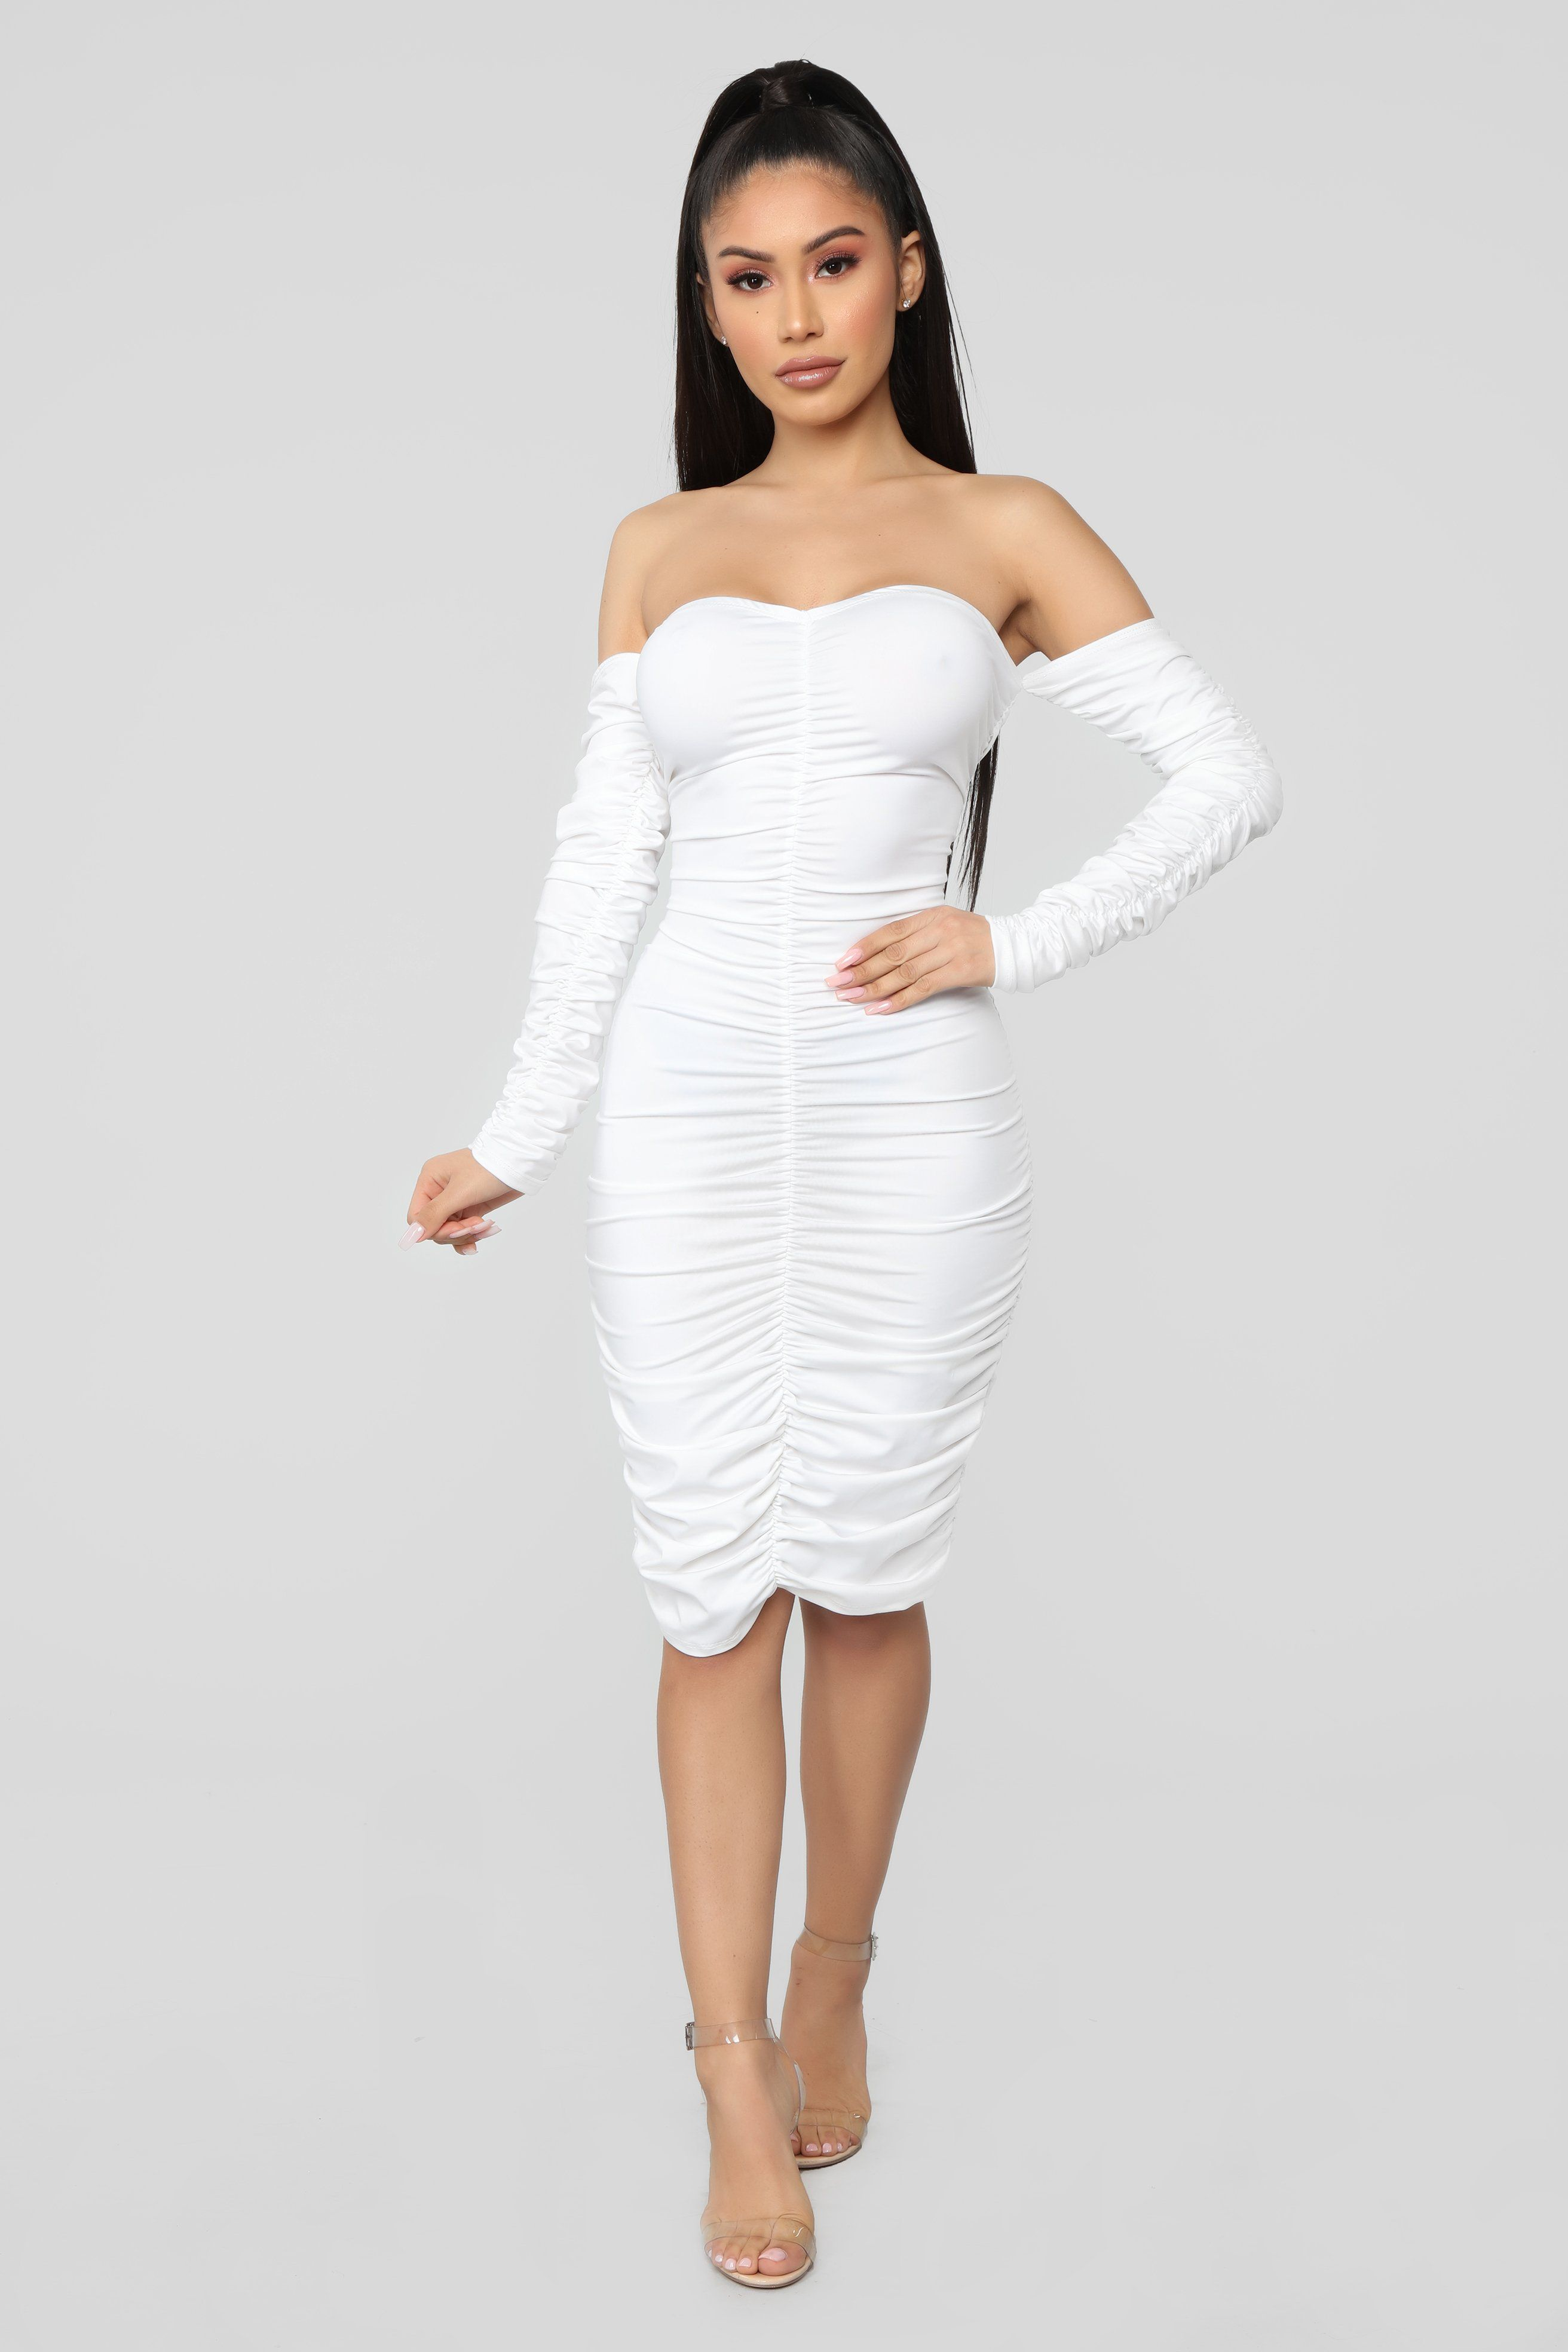 394644b8d7 Whatever You Want Ruched Midi Dress - White in 2019   Janet Guzman ...